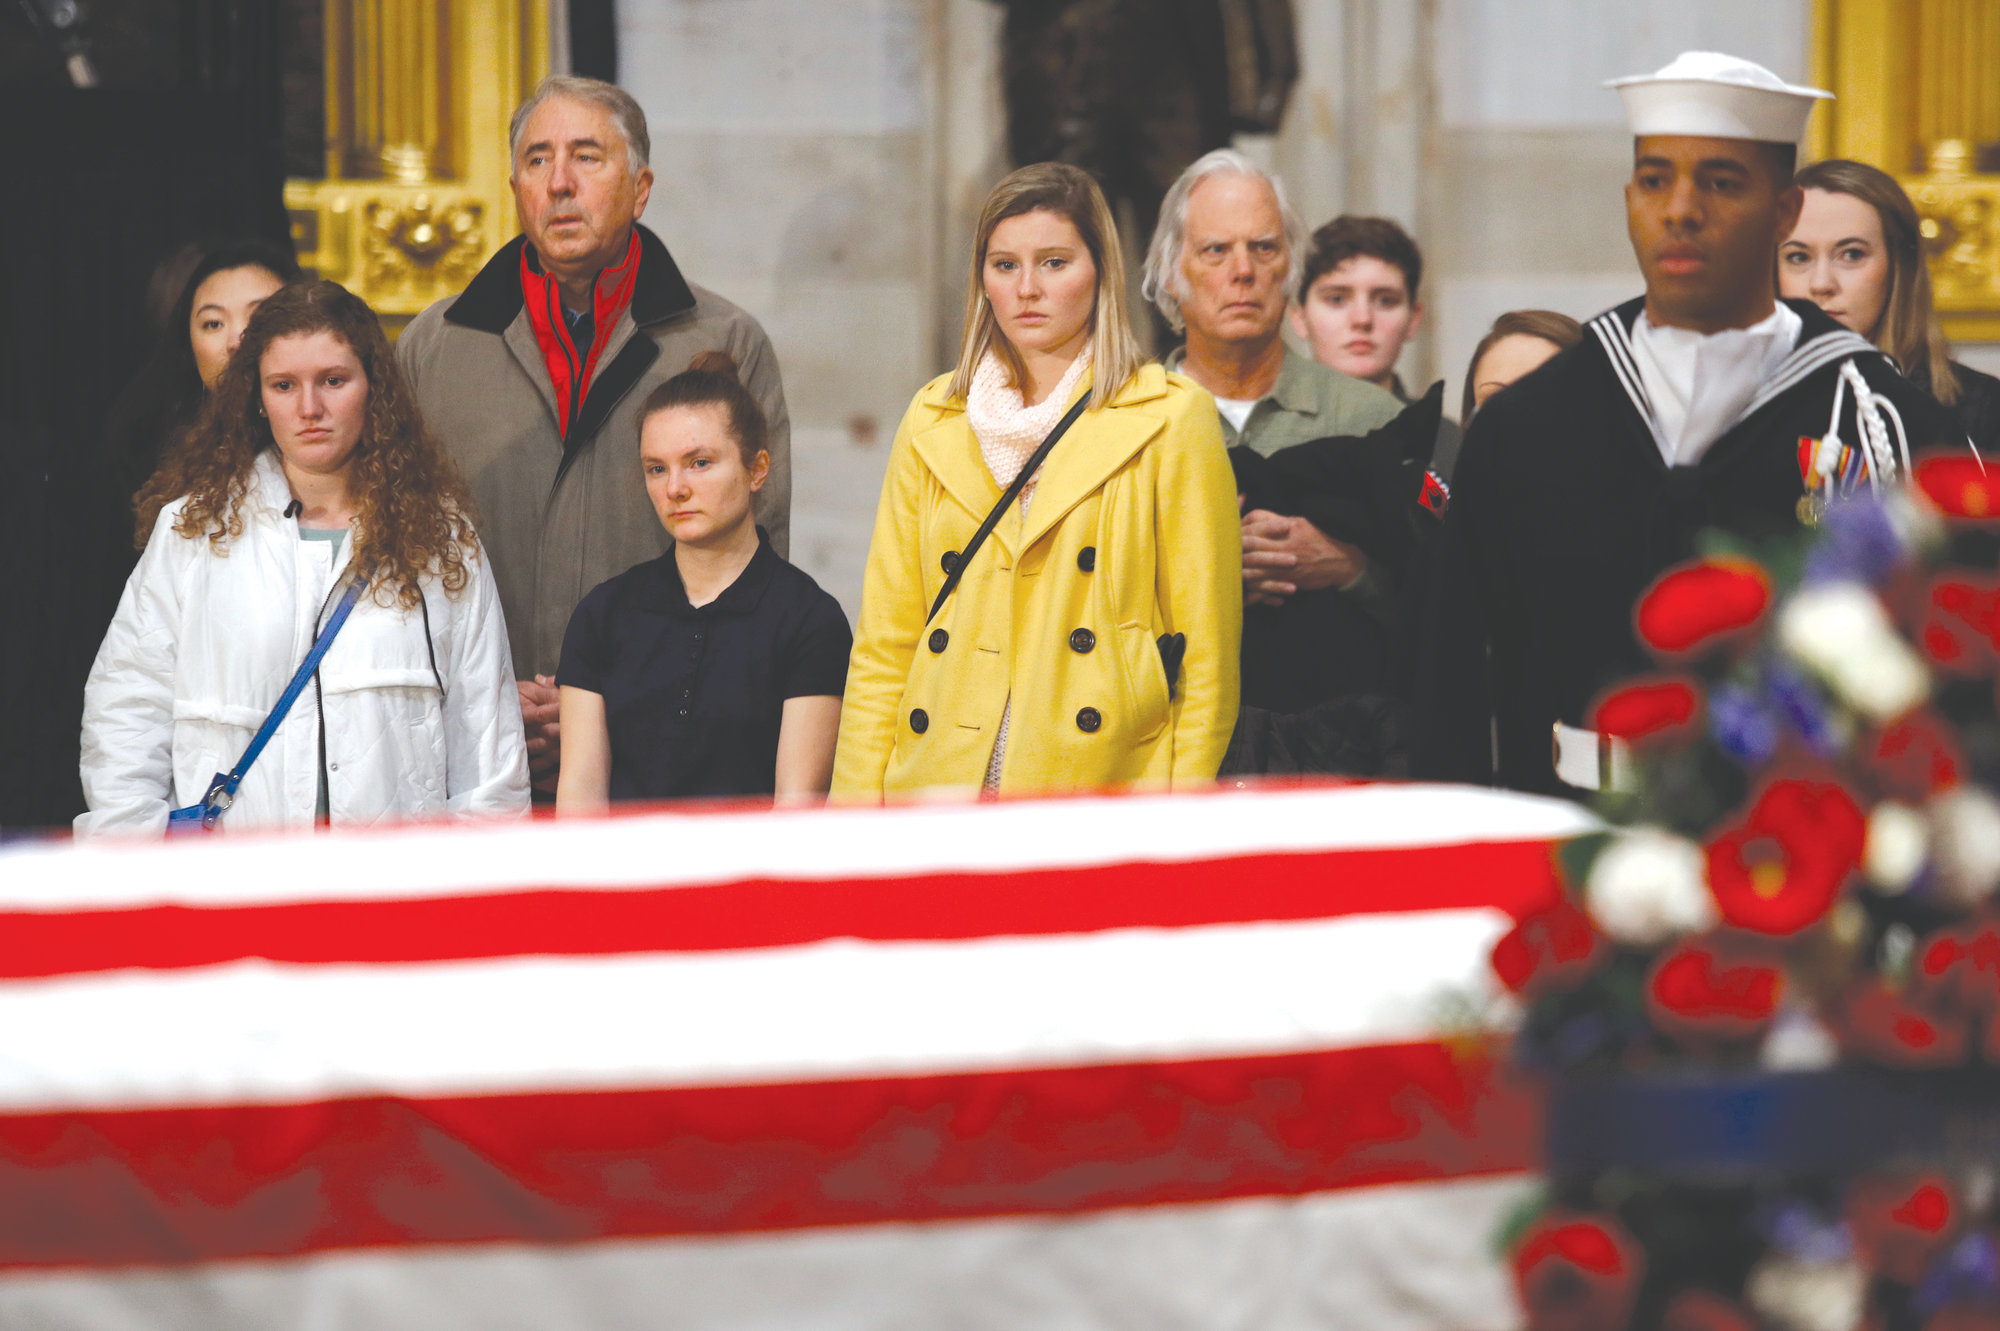 Visitors file past the flag-draped casket of former President George H.W. Bush as he lies in state in the Capitol Rotunda in   Washington on Tuesday.